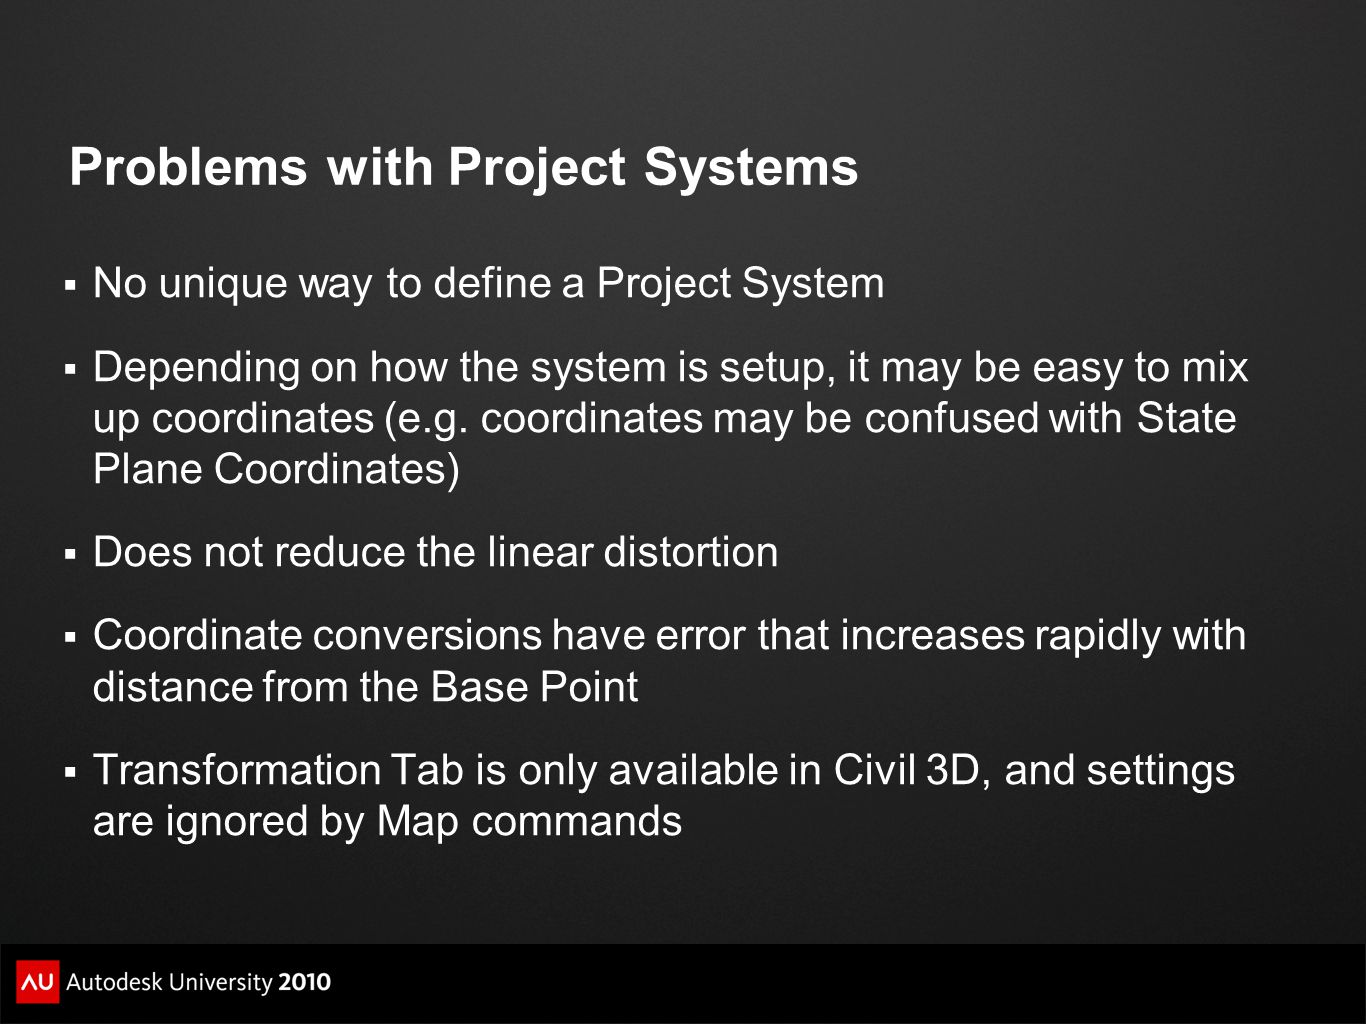 Problems with Project Systems